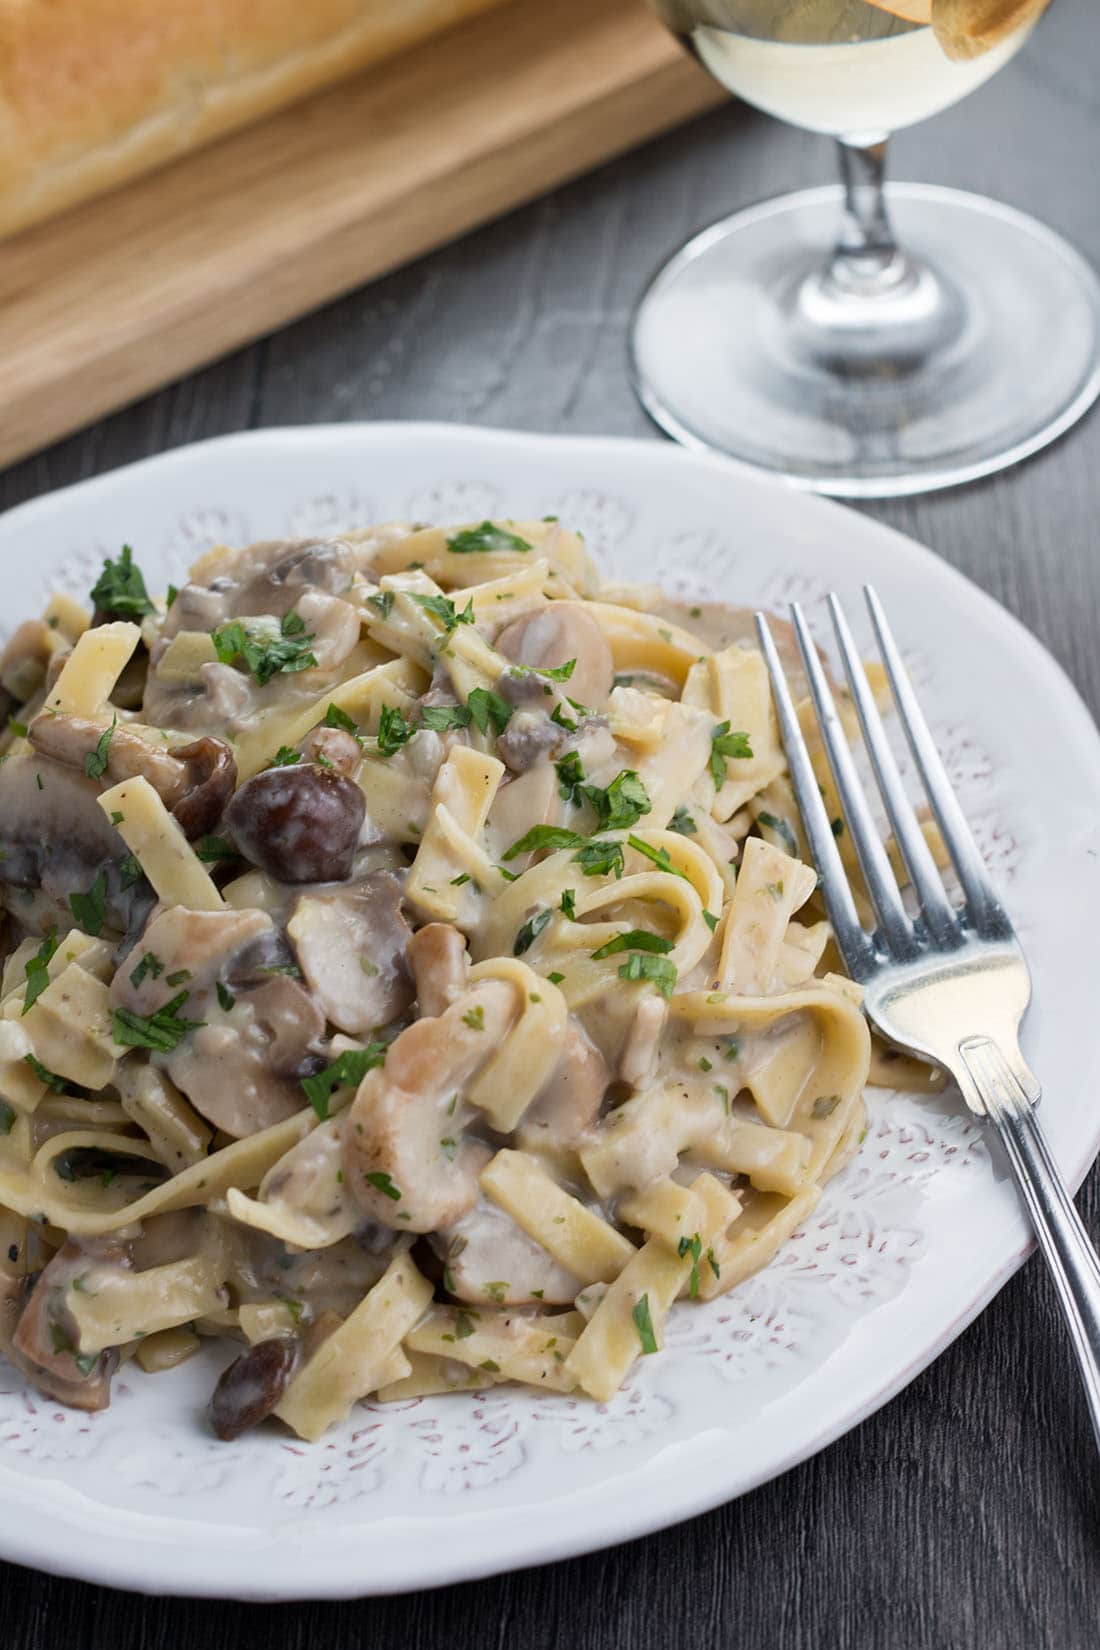 This recipe for Creamy Tagliatelle and Mushrooms makes a mouthwatering pasta dish using cremini mushrooms, fresh parsley, white wine, garlic and butter - what are you waiting for?